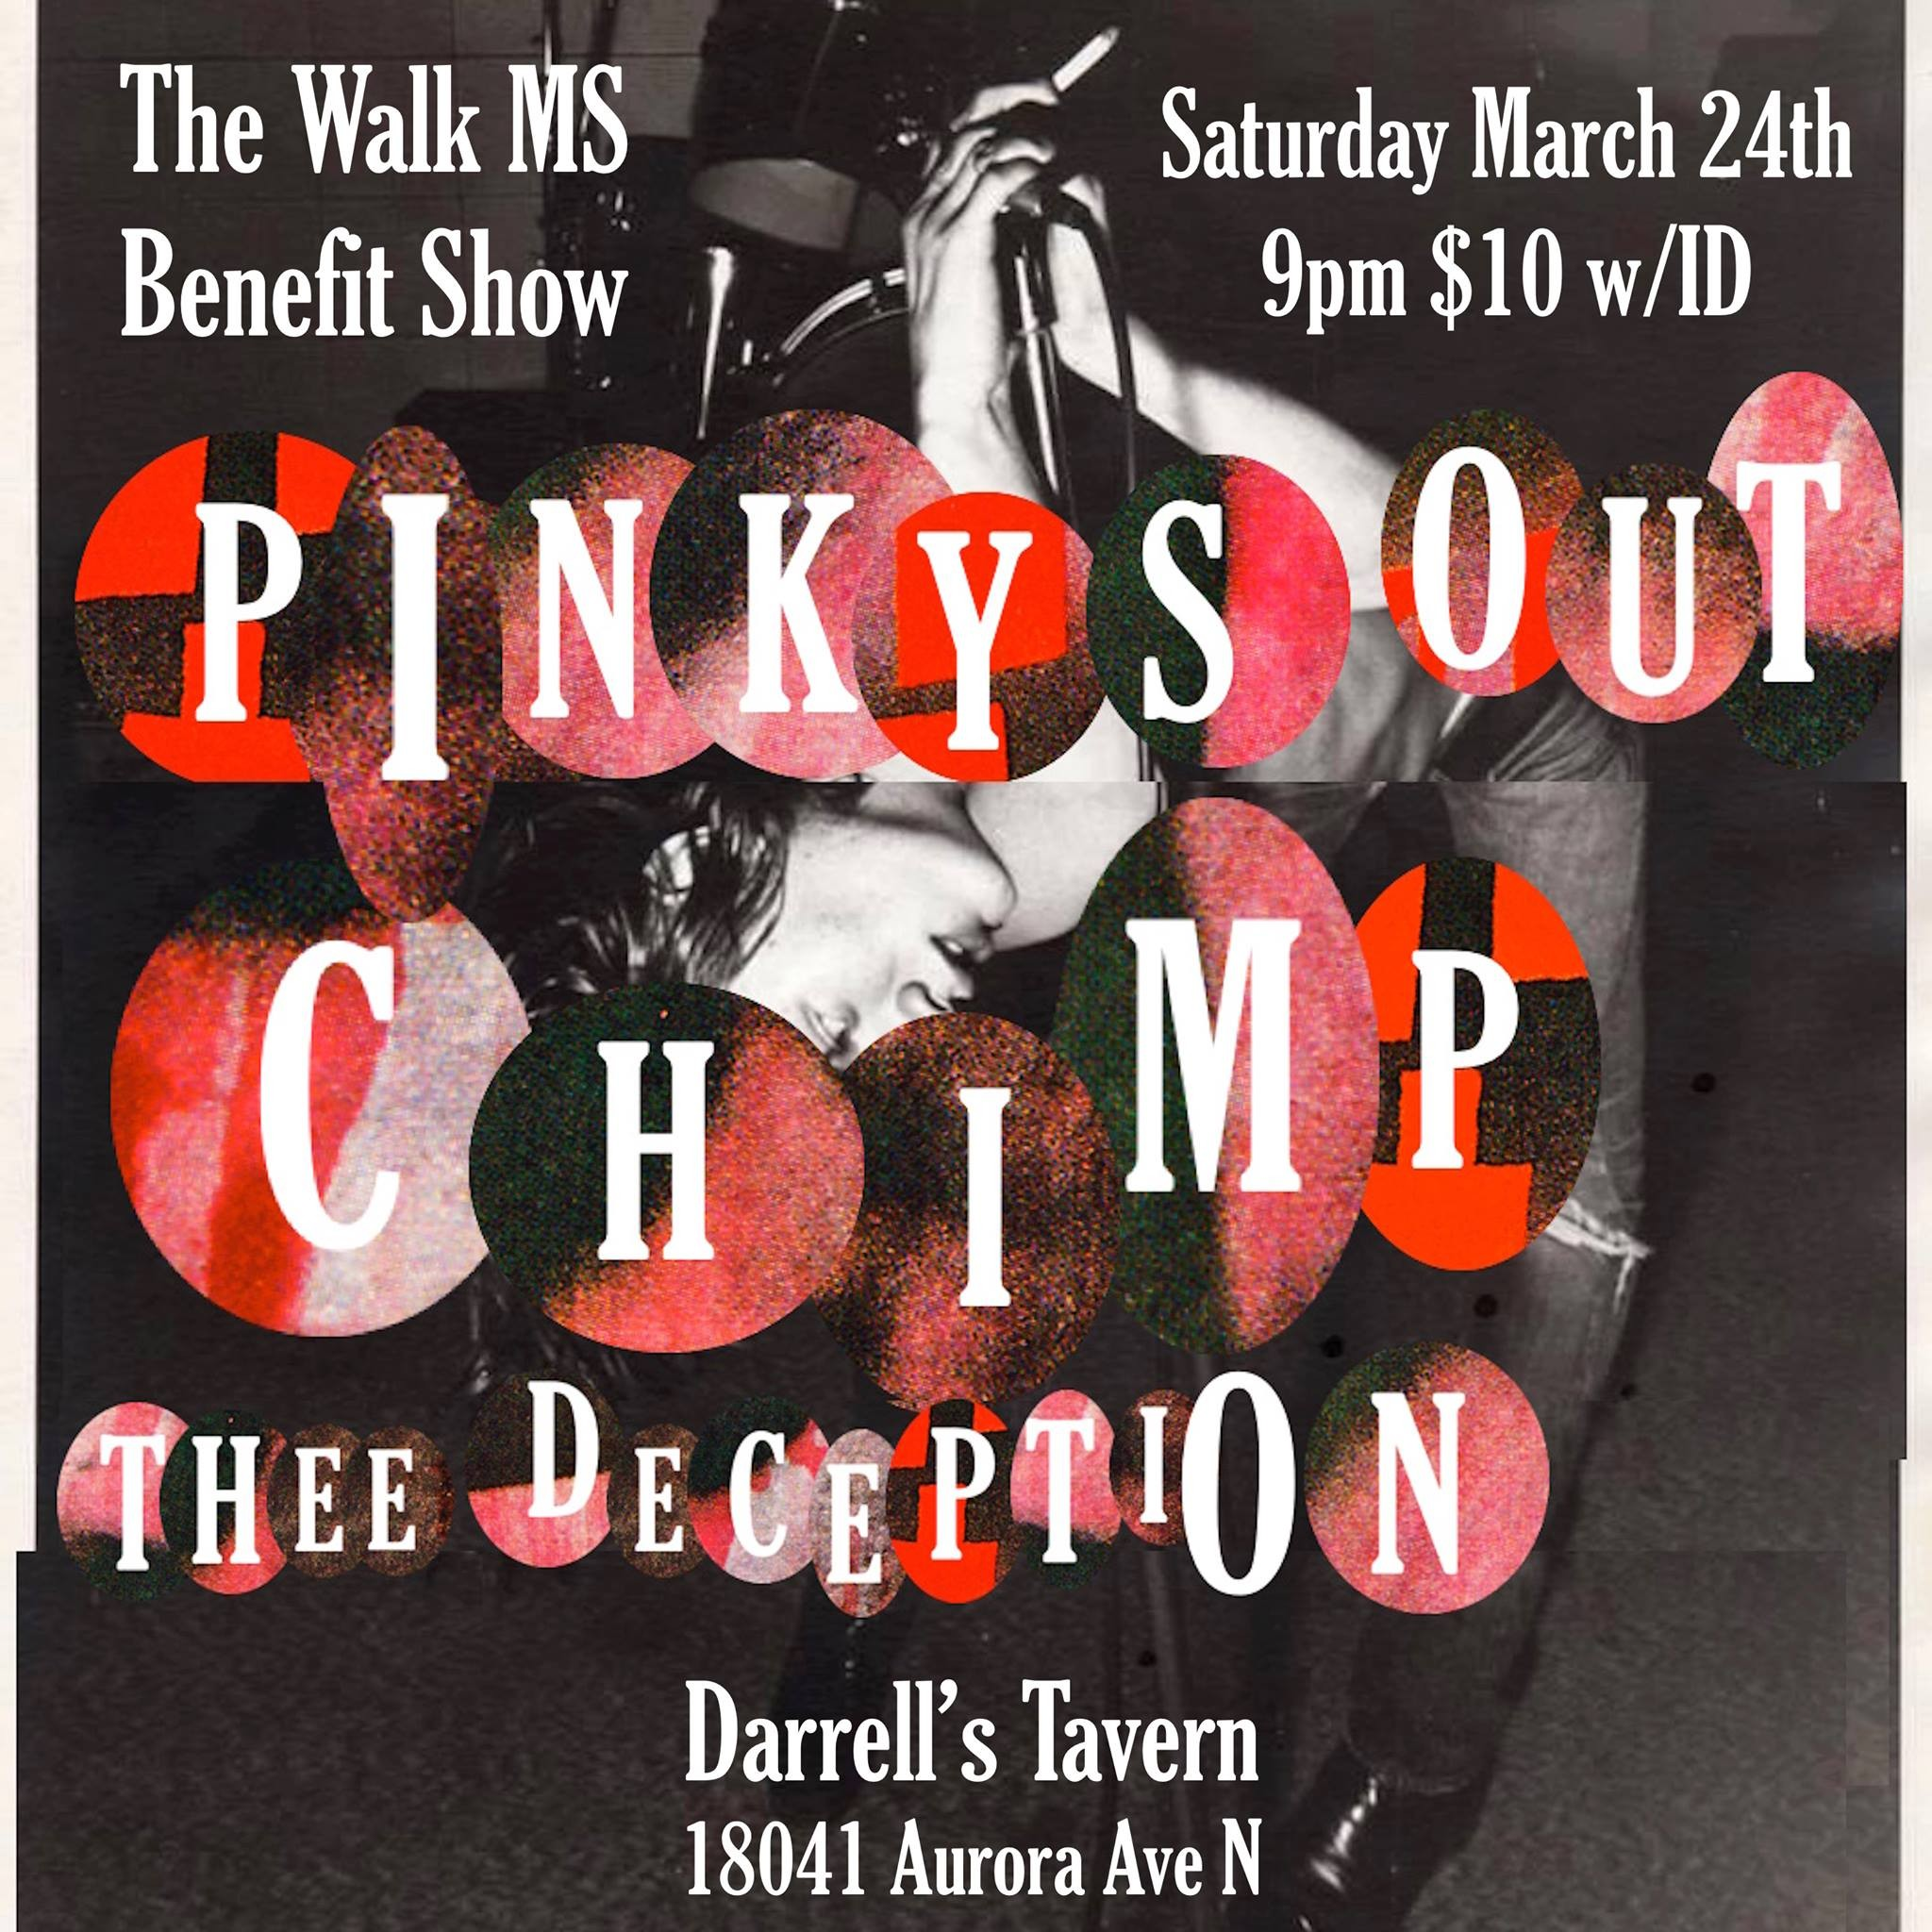 Pinkys Out, Chimp, Thee Deception at Darrell's Tavern in